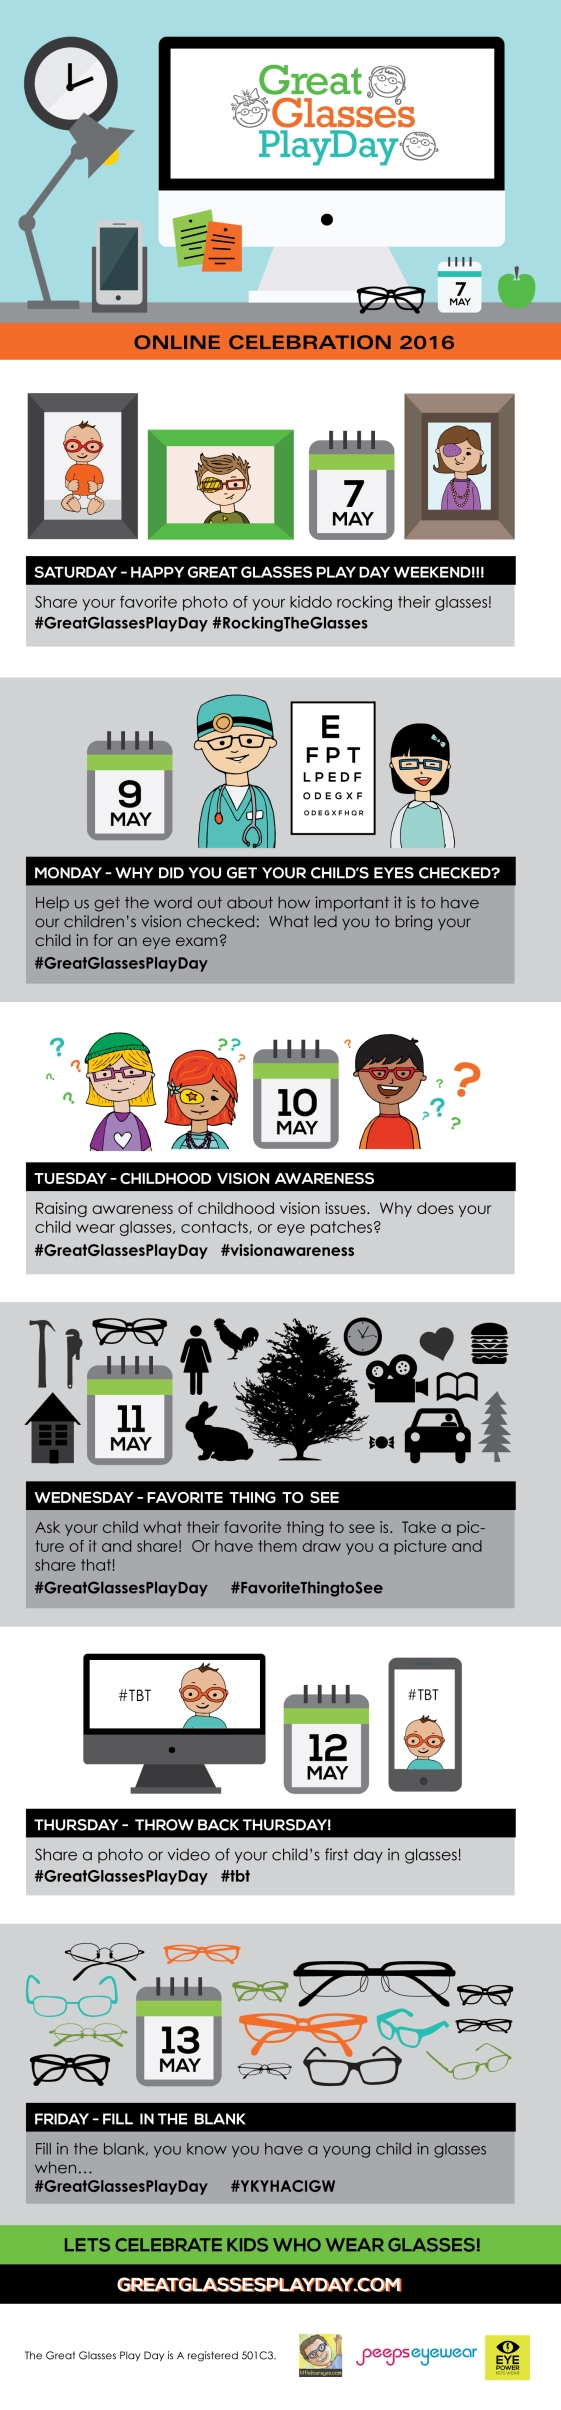 online-celebrations-infographic